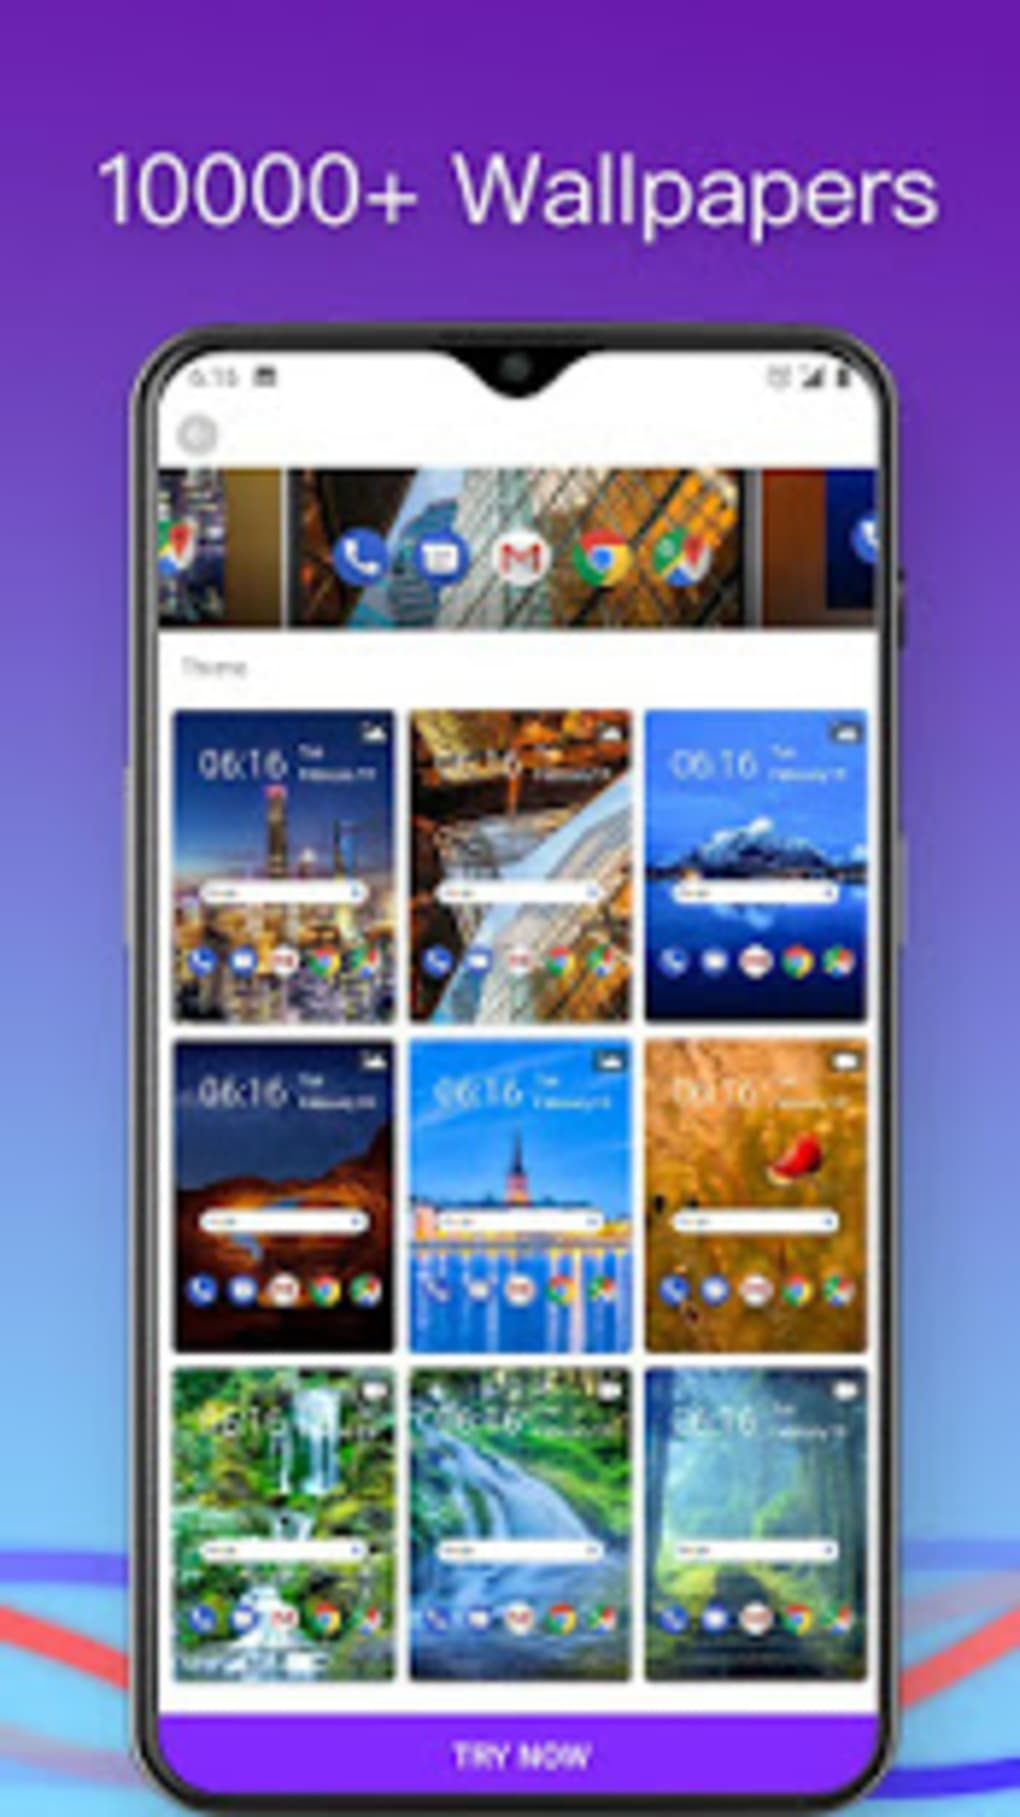 Wallpaper Pro Hd Live Wallpaper Apk For Android Download